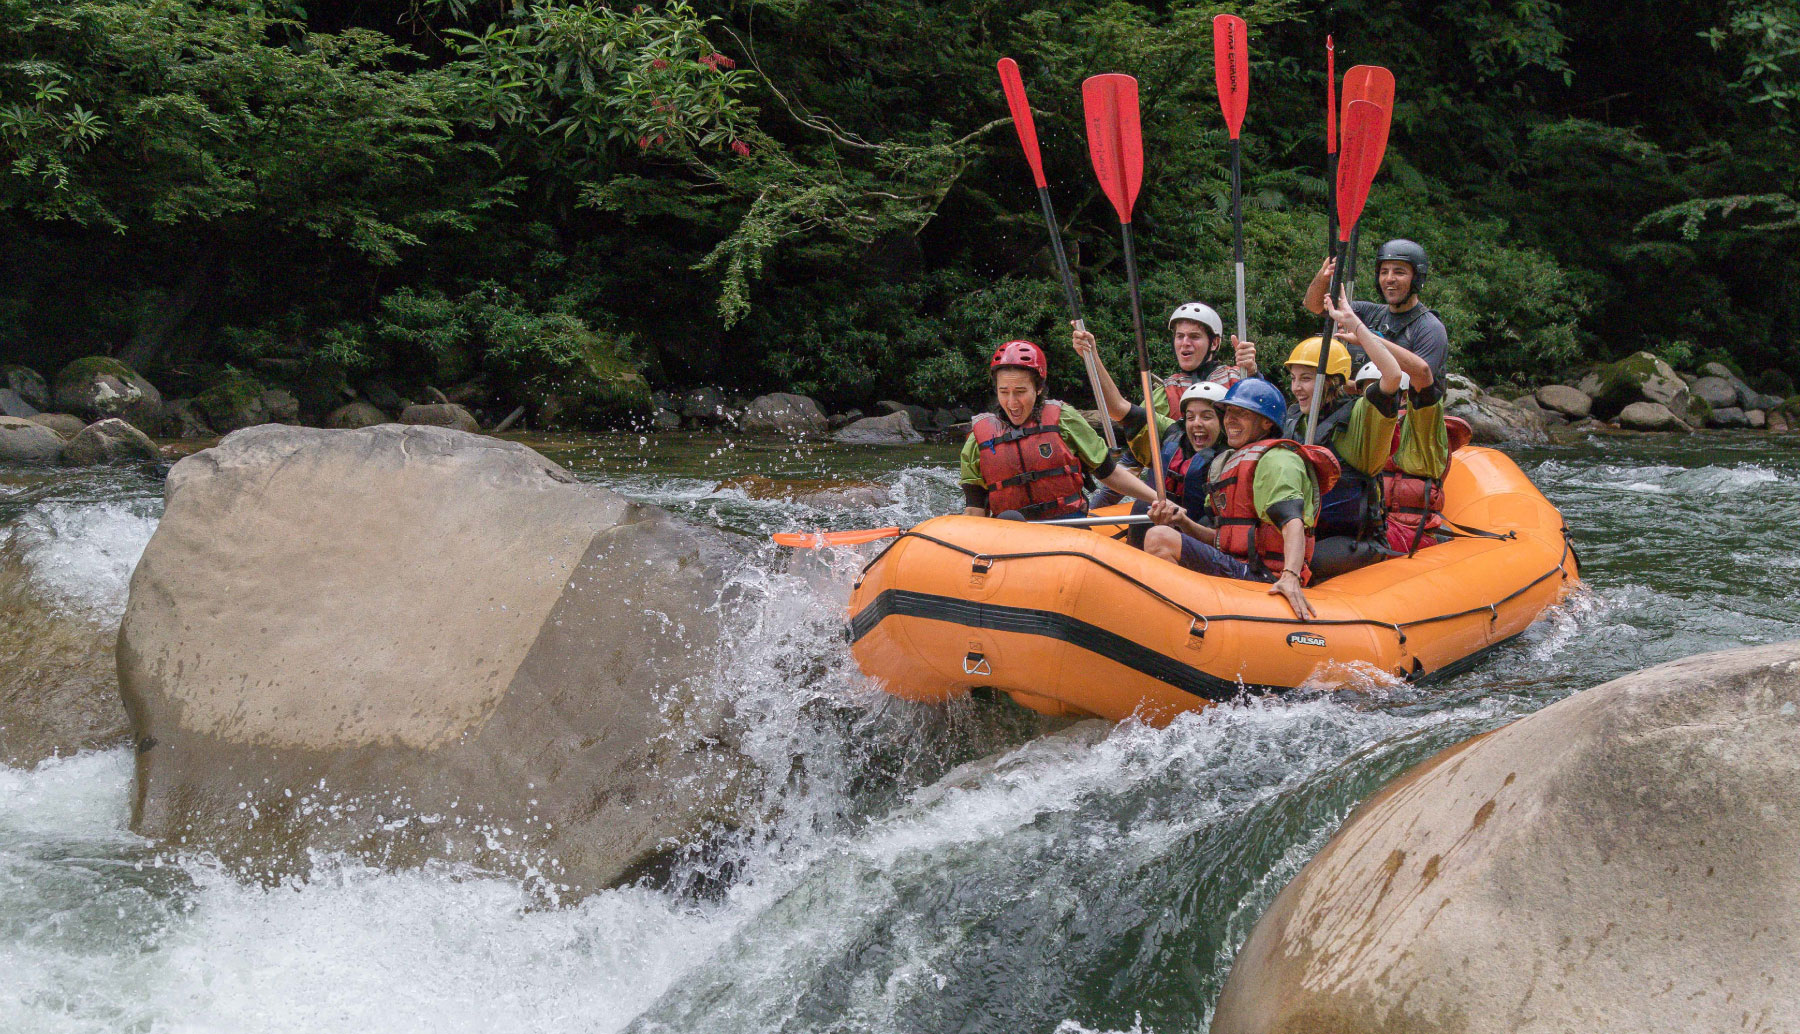 Rafting Jondachi River with Kayak Ecuador.